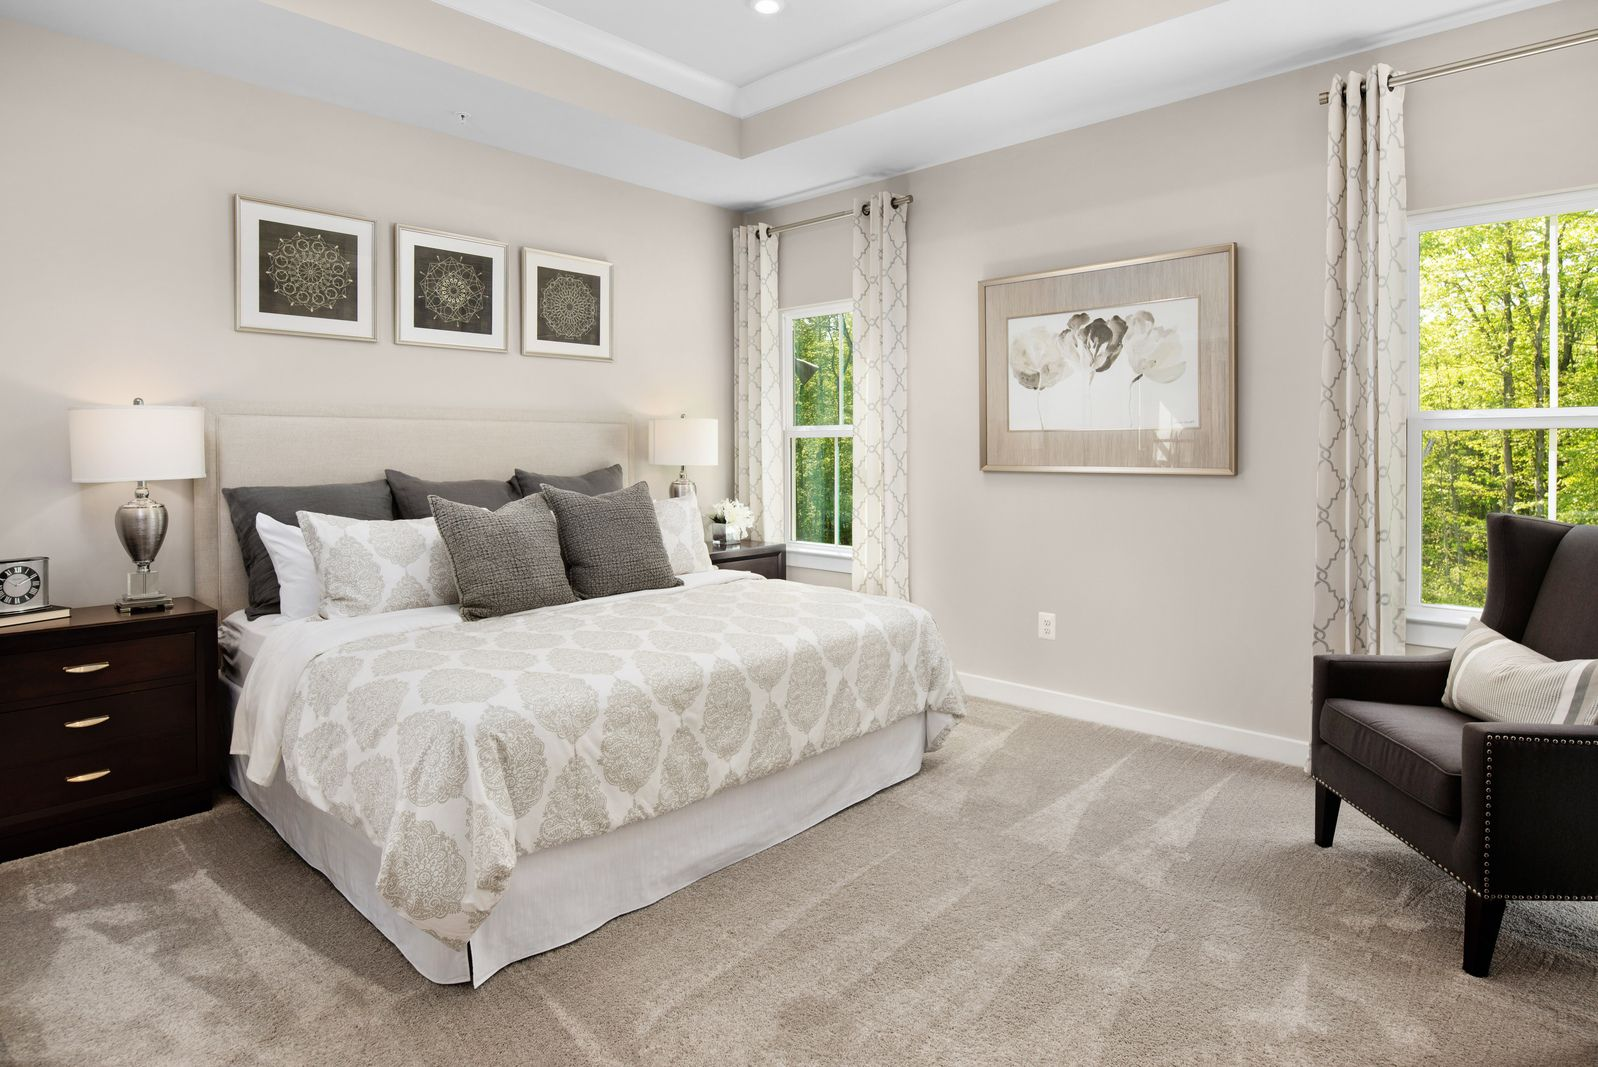 Bedroom featured in the Bramante Ranch By Ryan Homes in Dover, DE